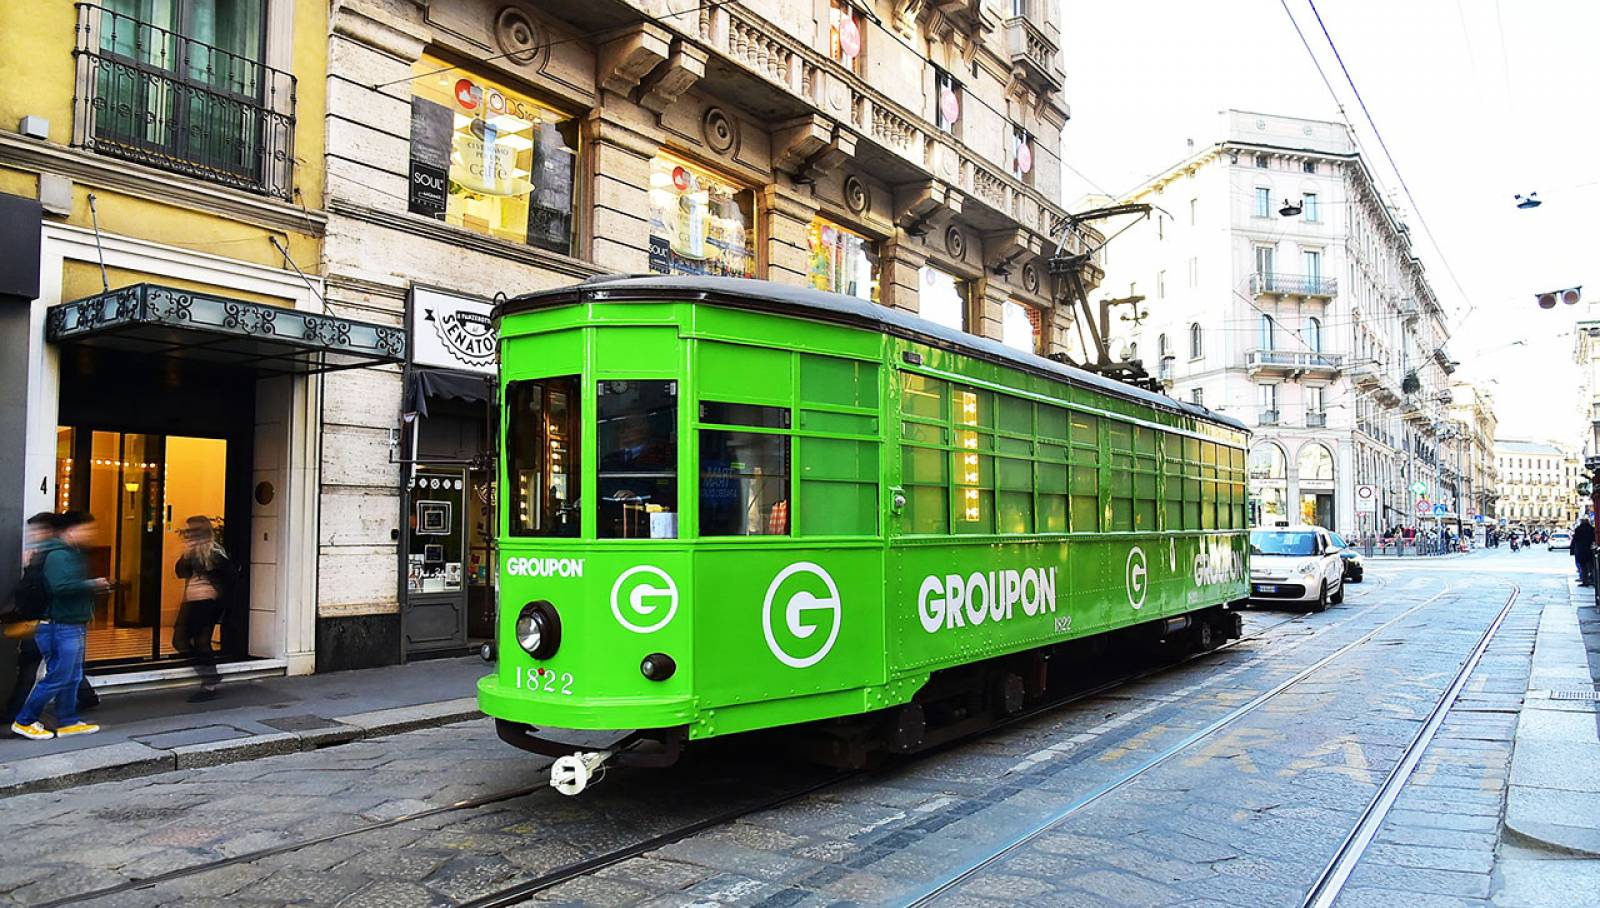 IGPDecaux Out of Home advertising in Milan tram for Groupon